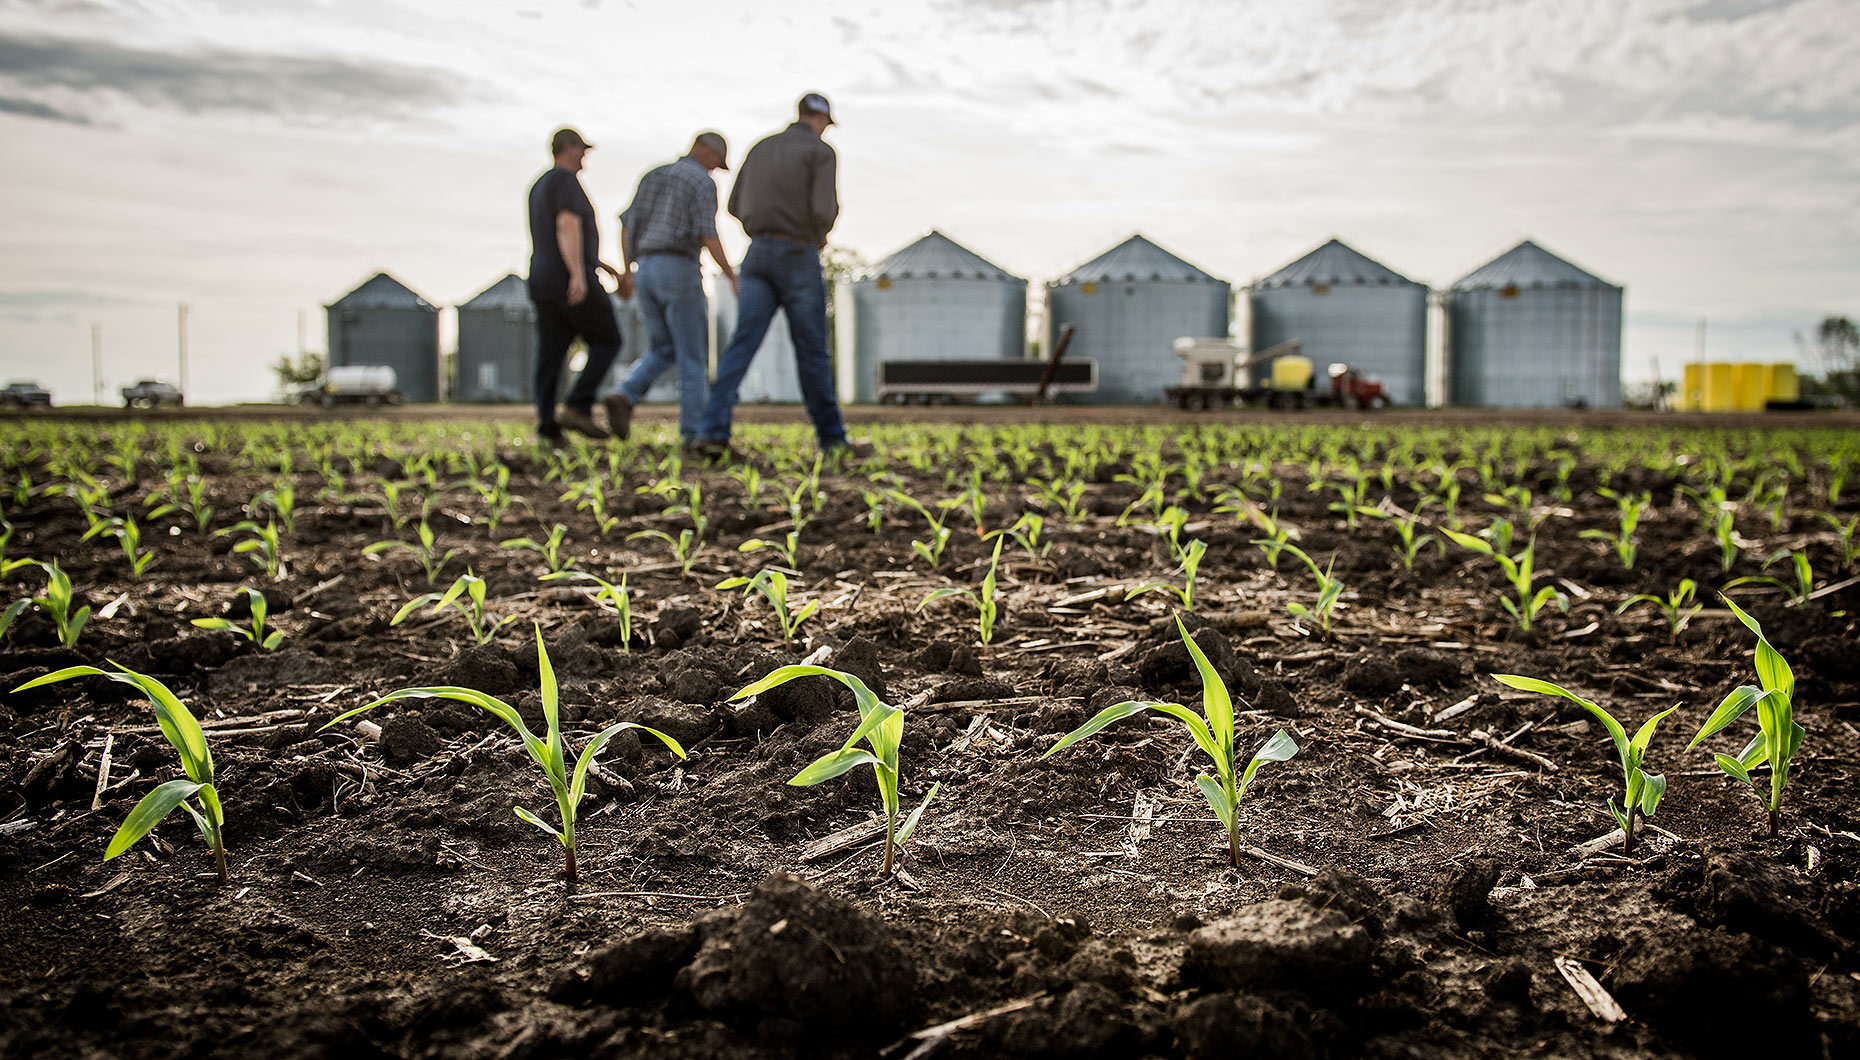 Agronomist and Farmers in Cornfield